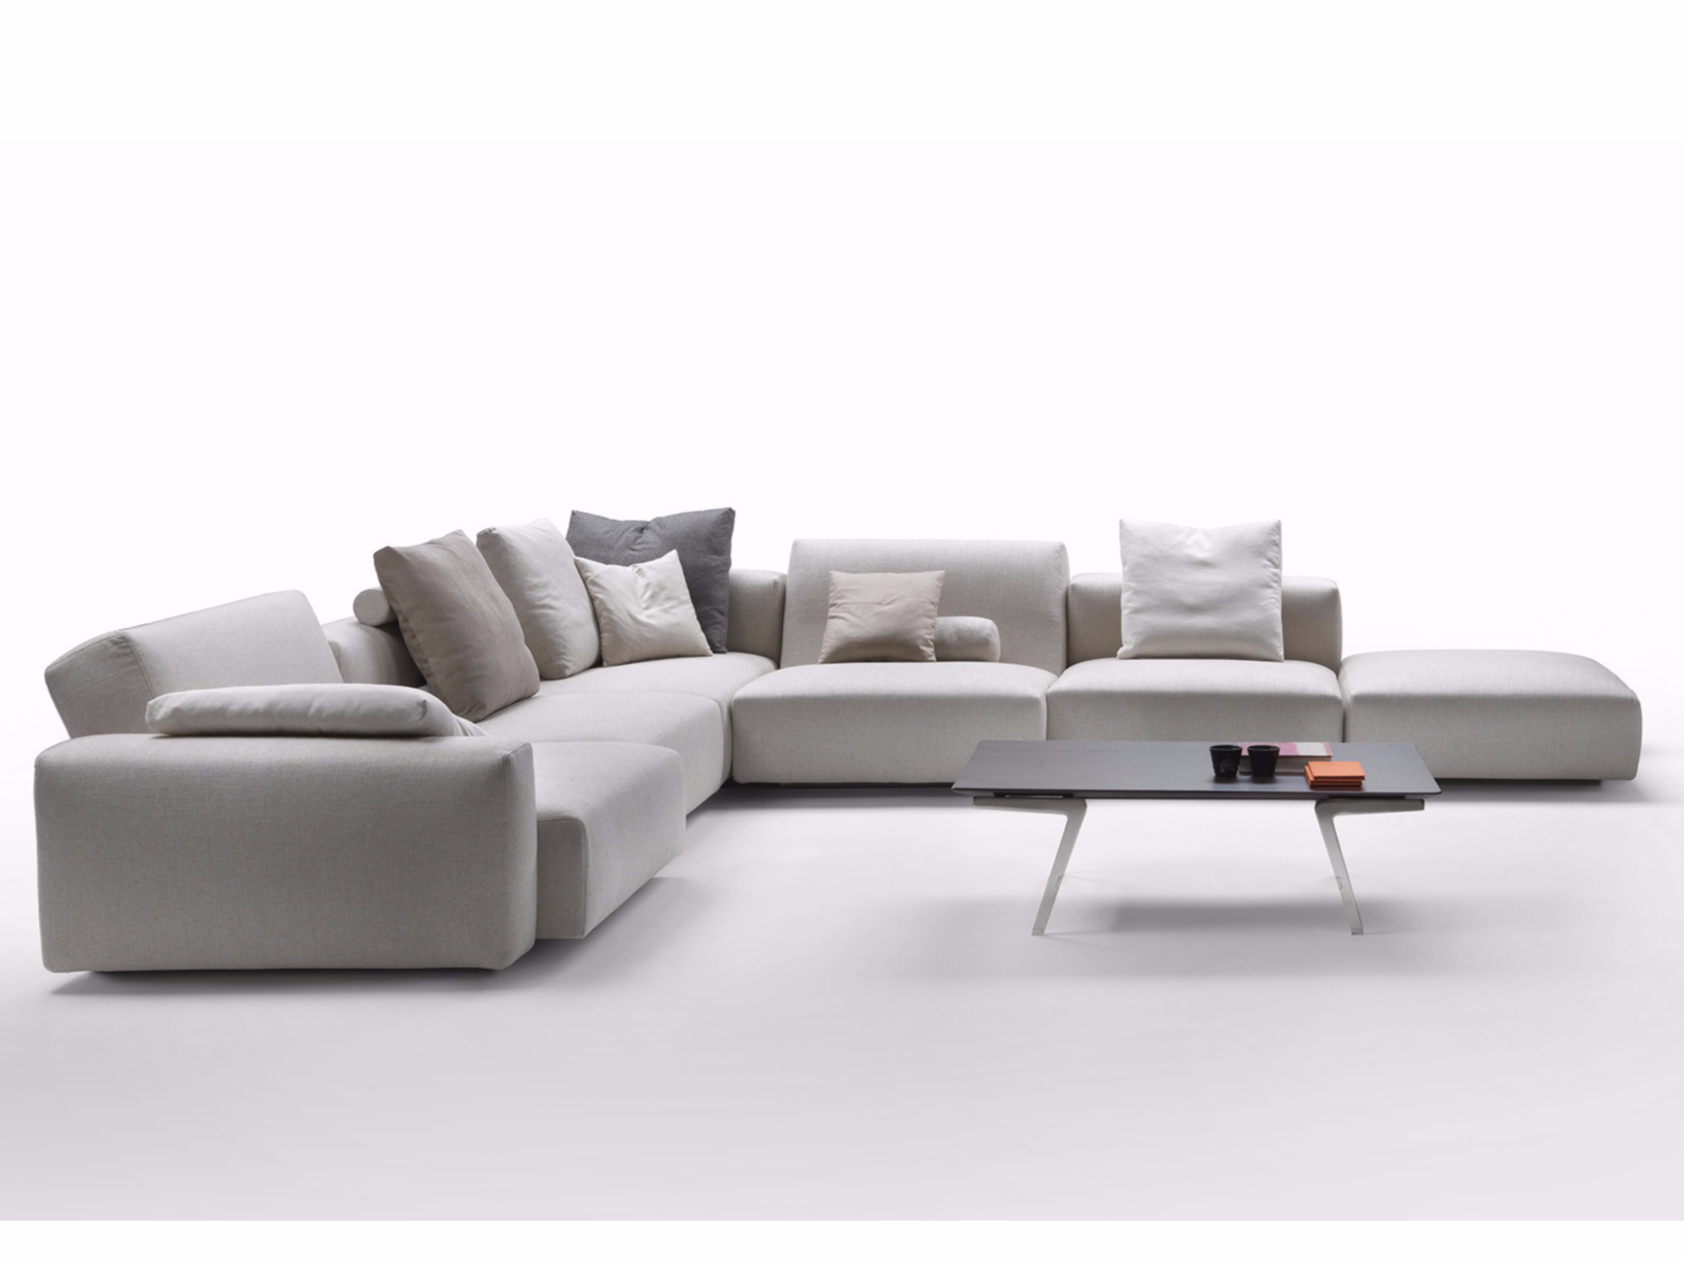 Superb img of  lario 2016 corner sofa flexform Wood Frame Sofa With Cushions sofa with #775E54 color and 1684x1262 pixels